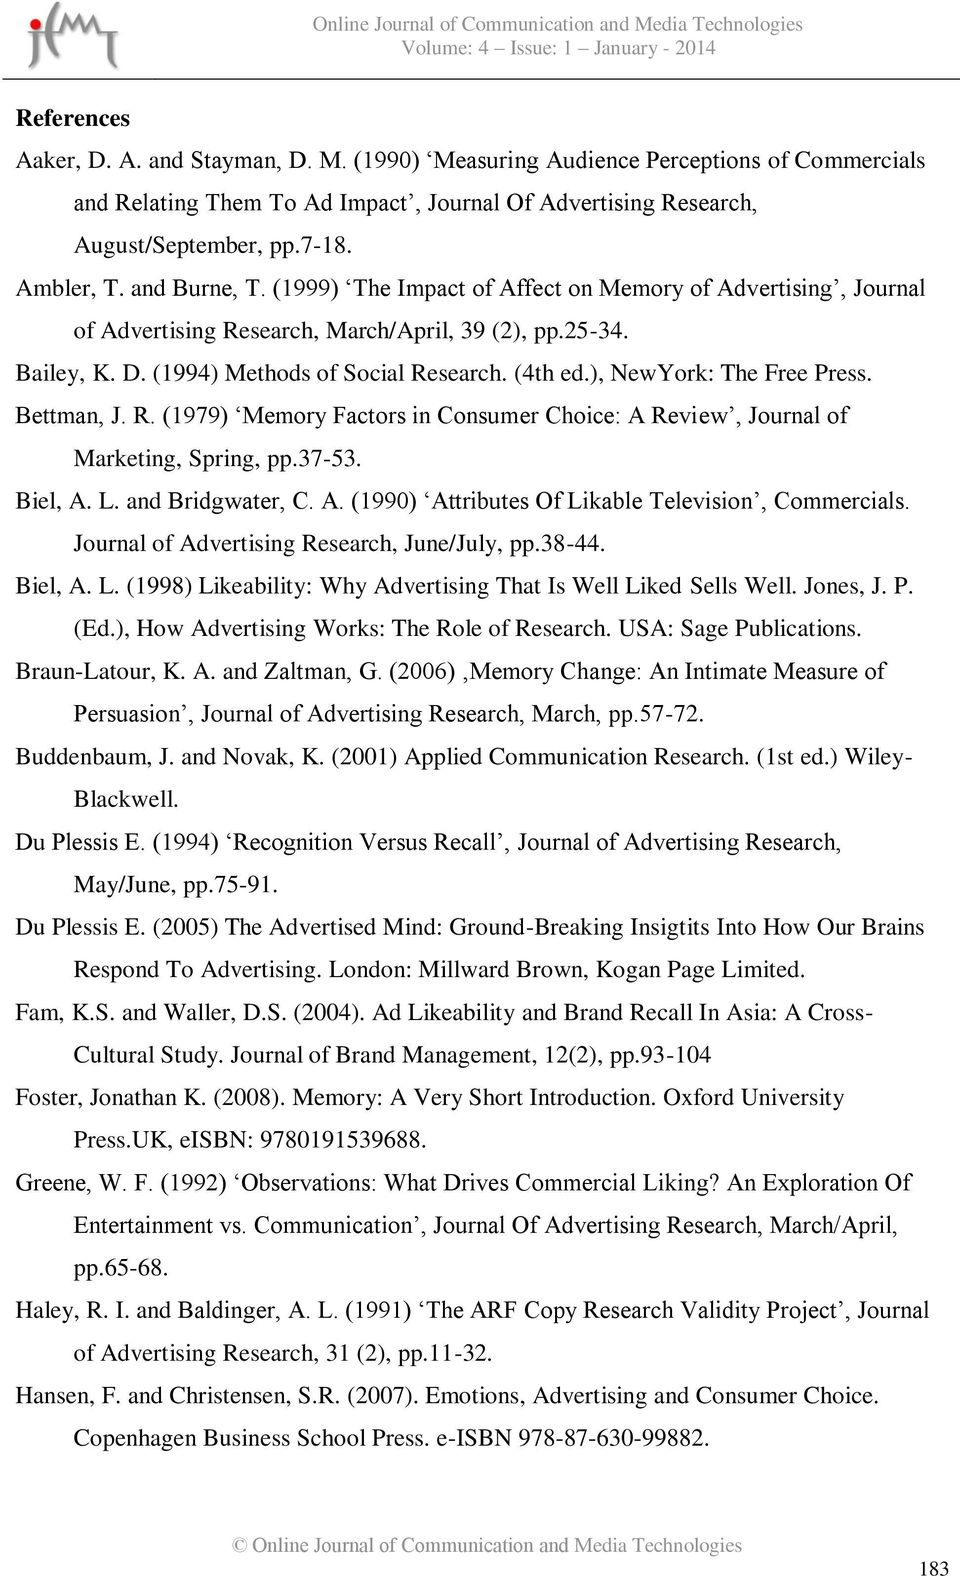 ), NewYork: The Free Press. Bettman, J. R. (1979) Memory Factors in Consumer Choice: A Review, Journal of Marketing, Spring, pp.37-53. Biel, A. L. and Bridgwater, C. A. (1990) Attributes Of Likable Television, Commercials.